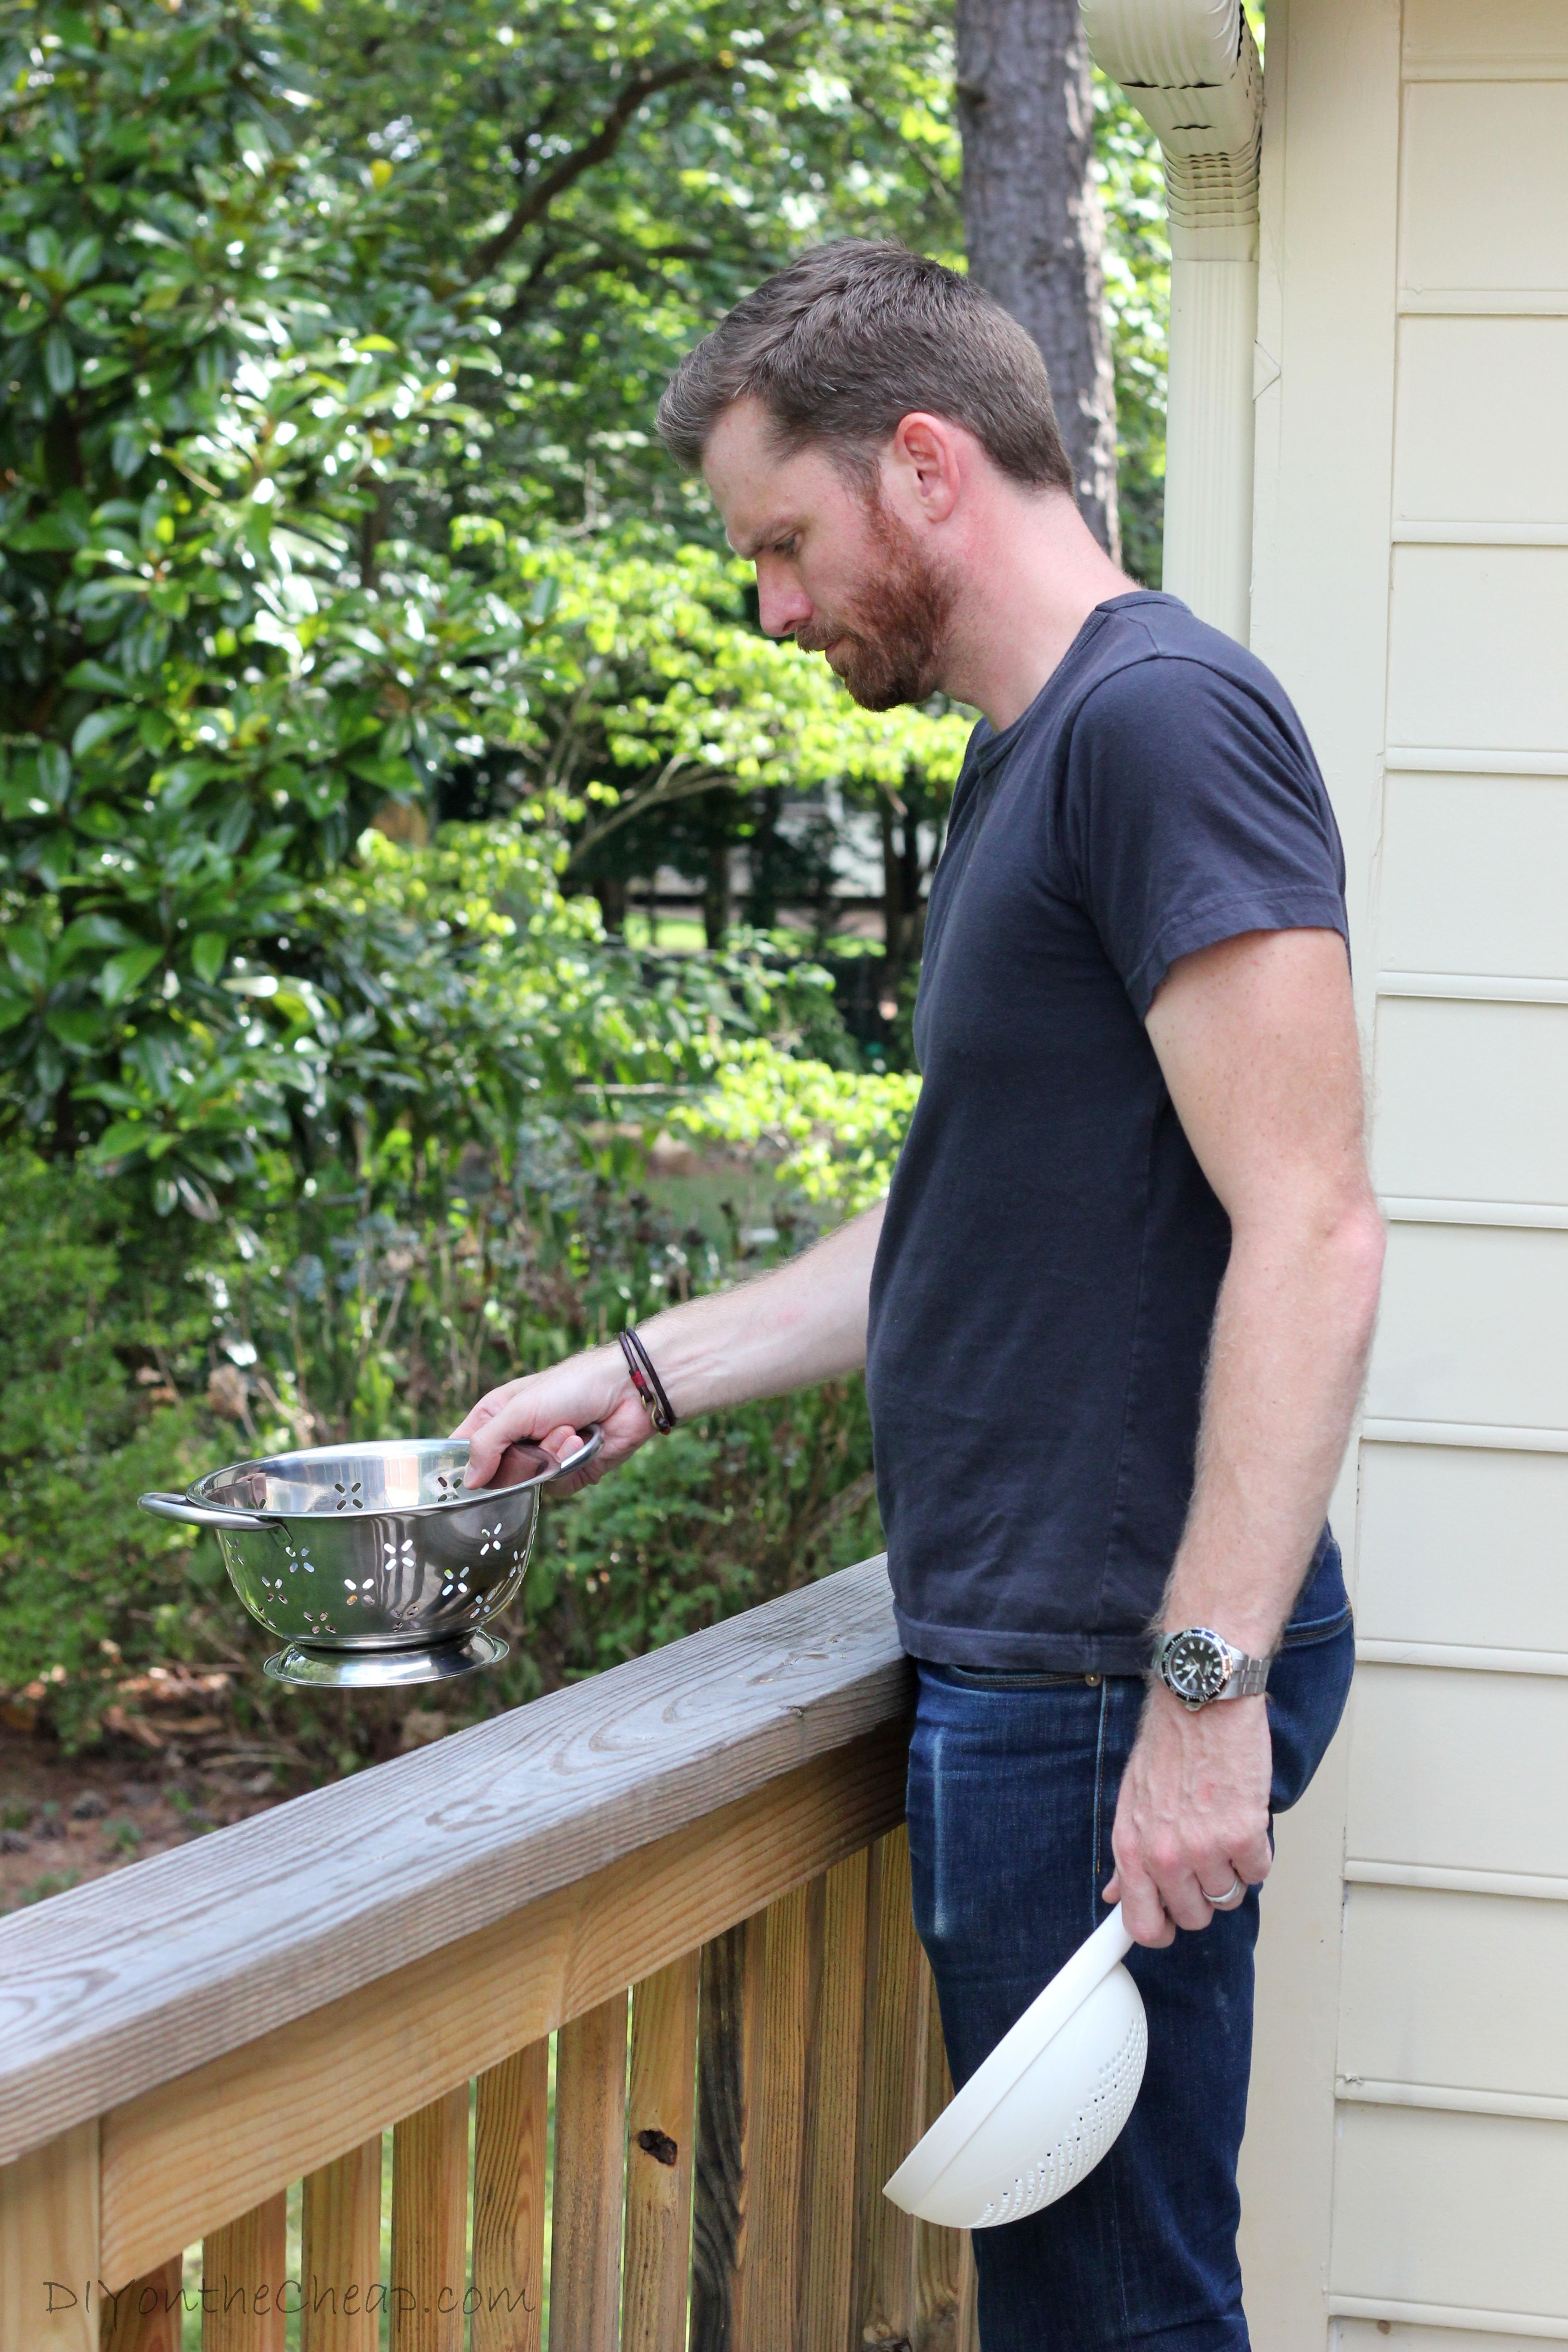 How to roast coffee beans (the inexpensive way!)